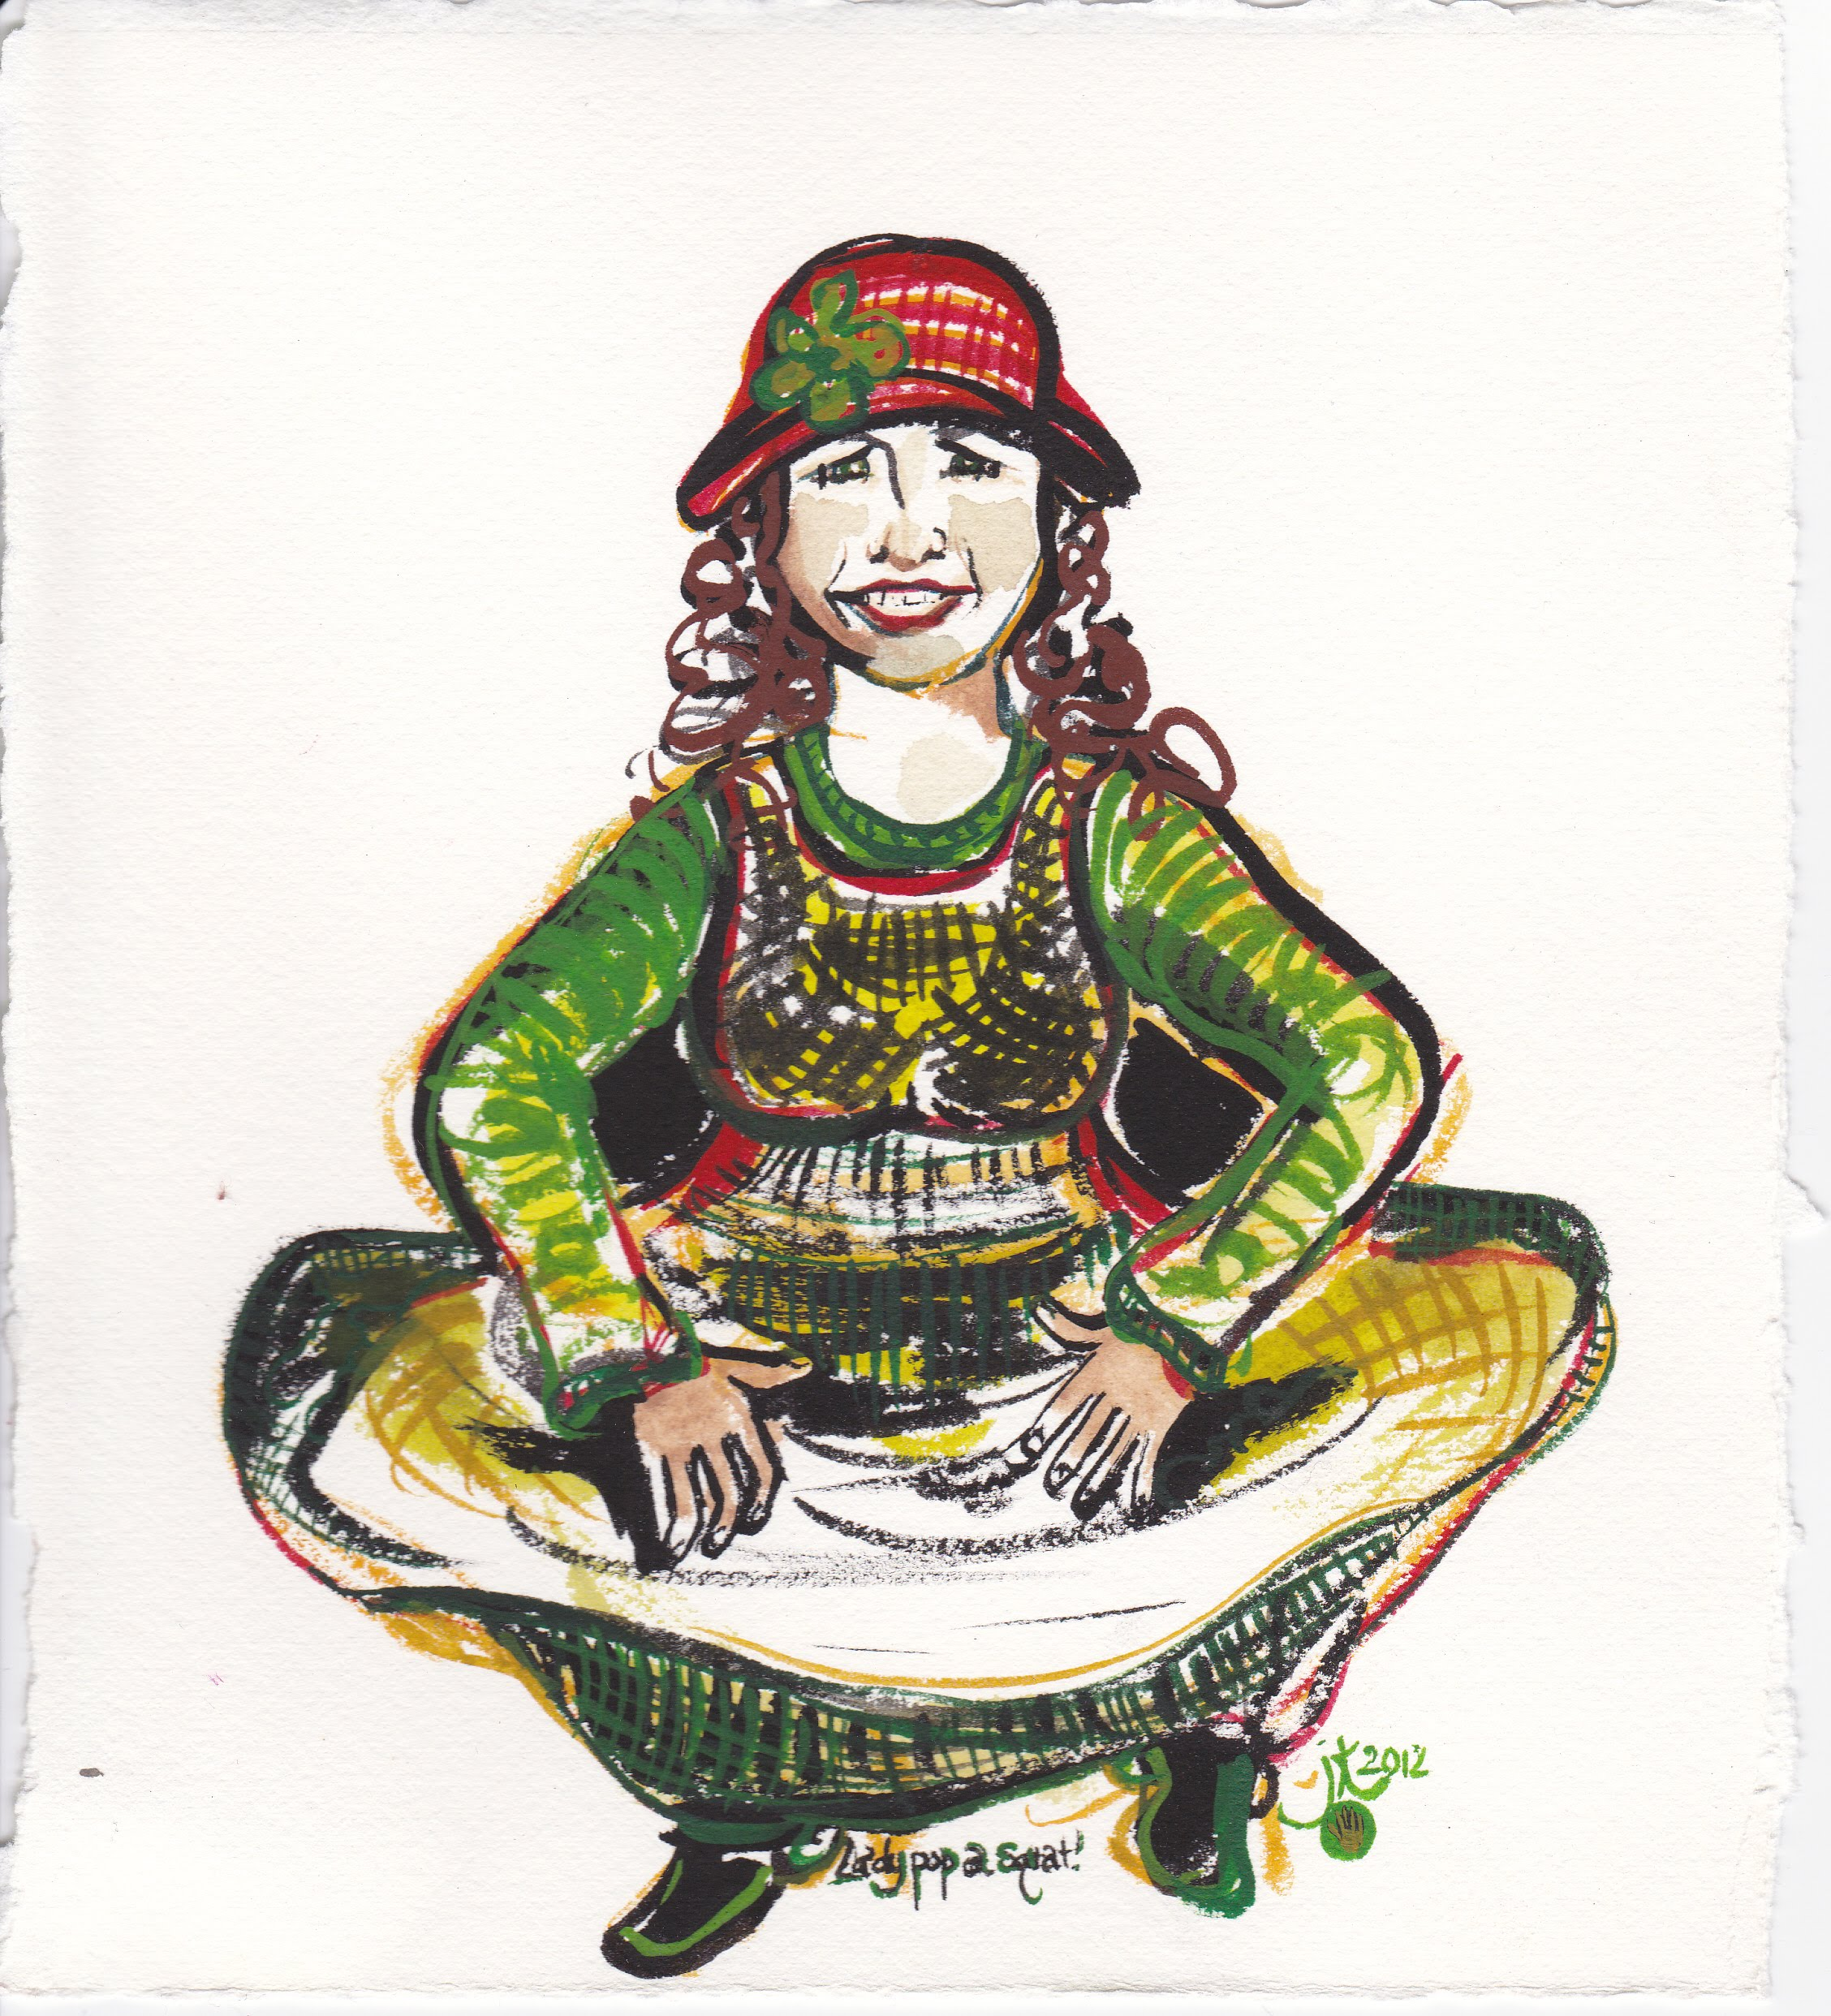 Lady Pop A Squat 2013